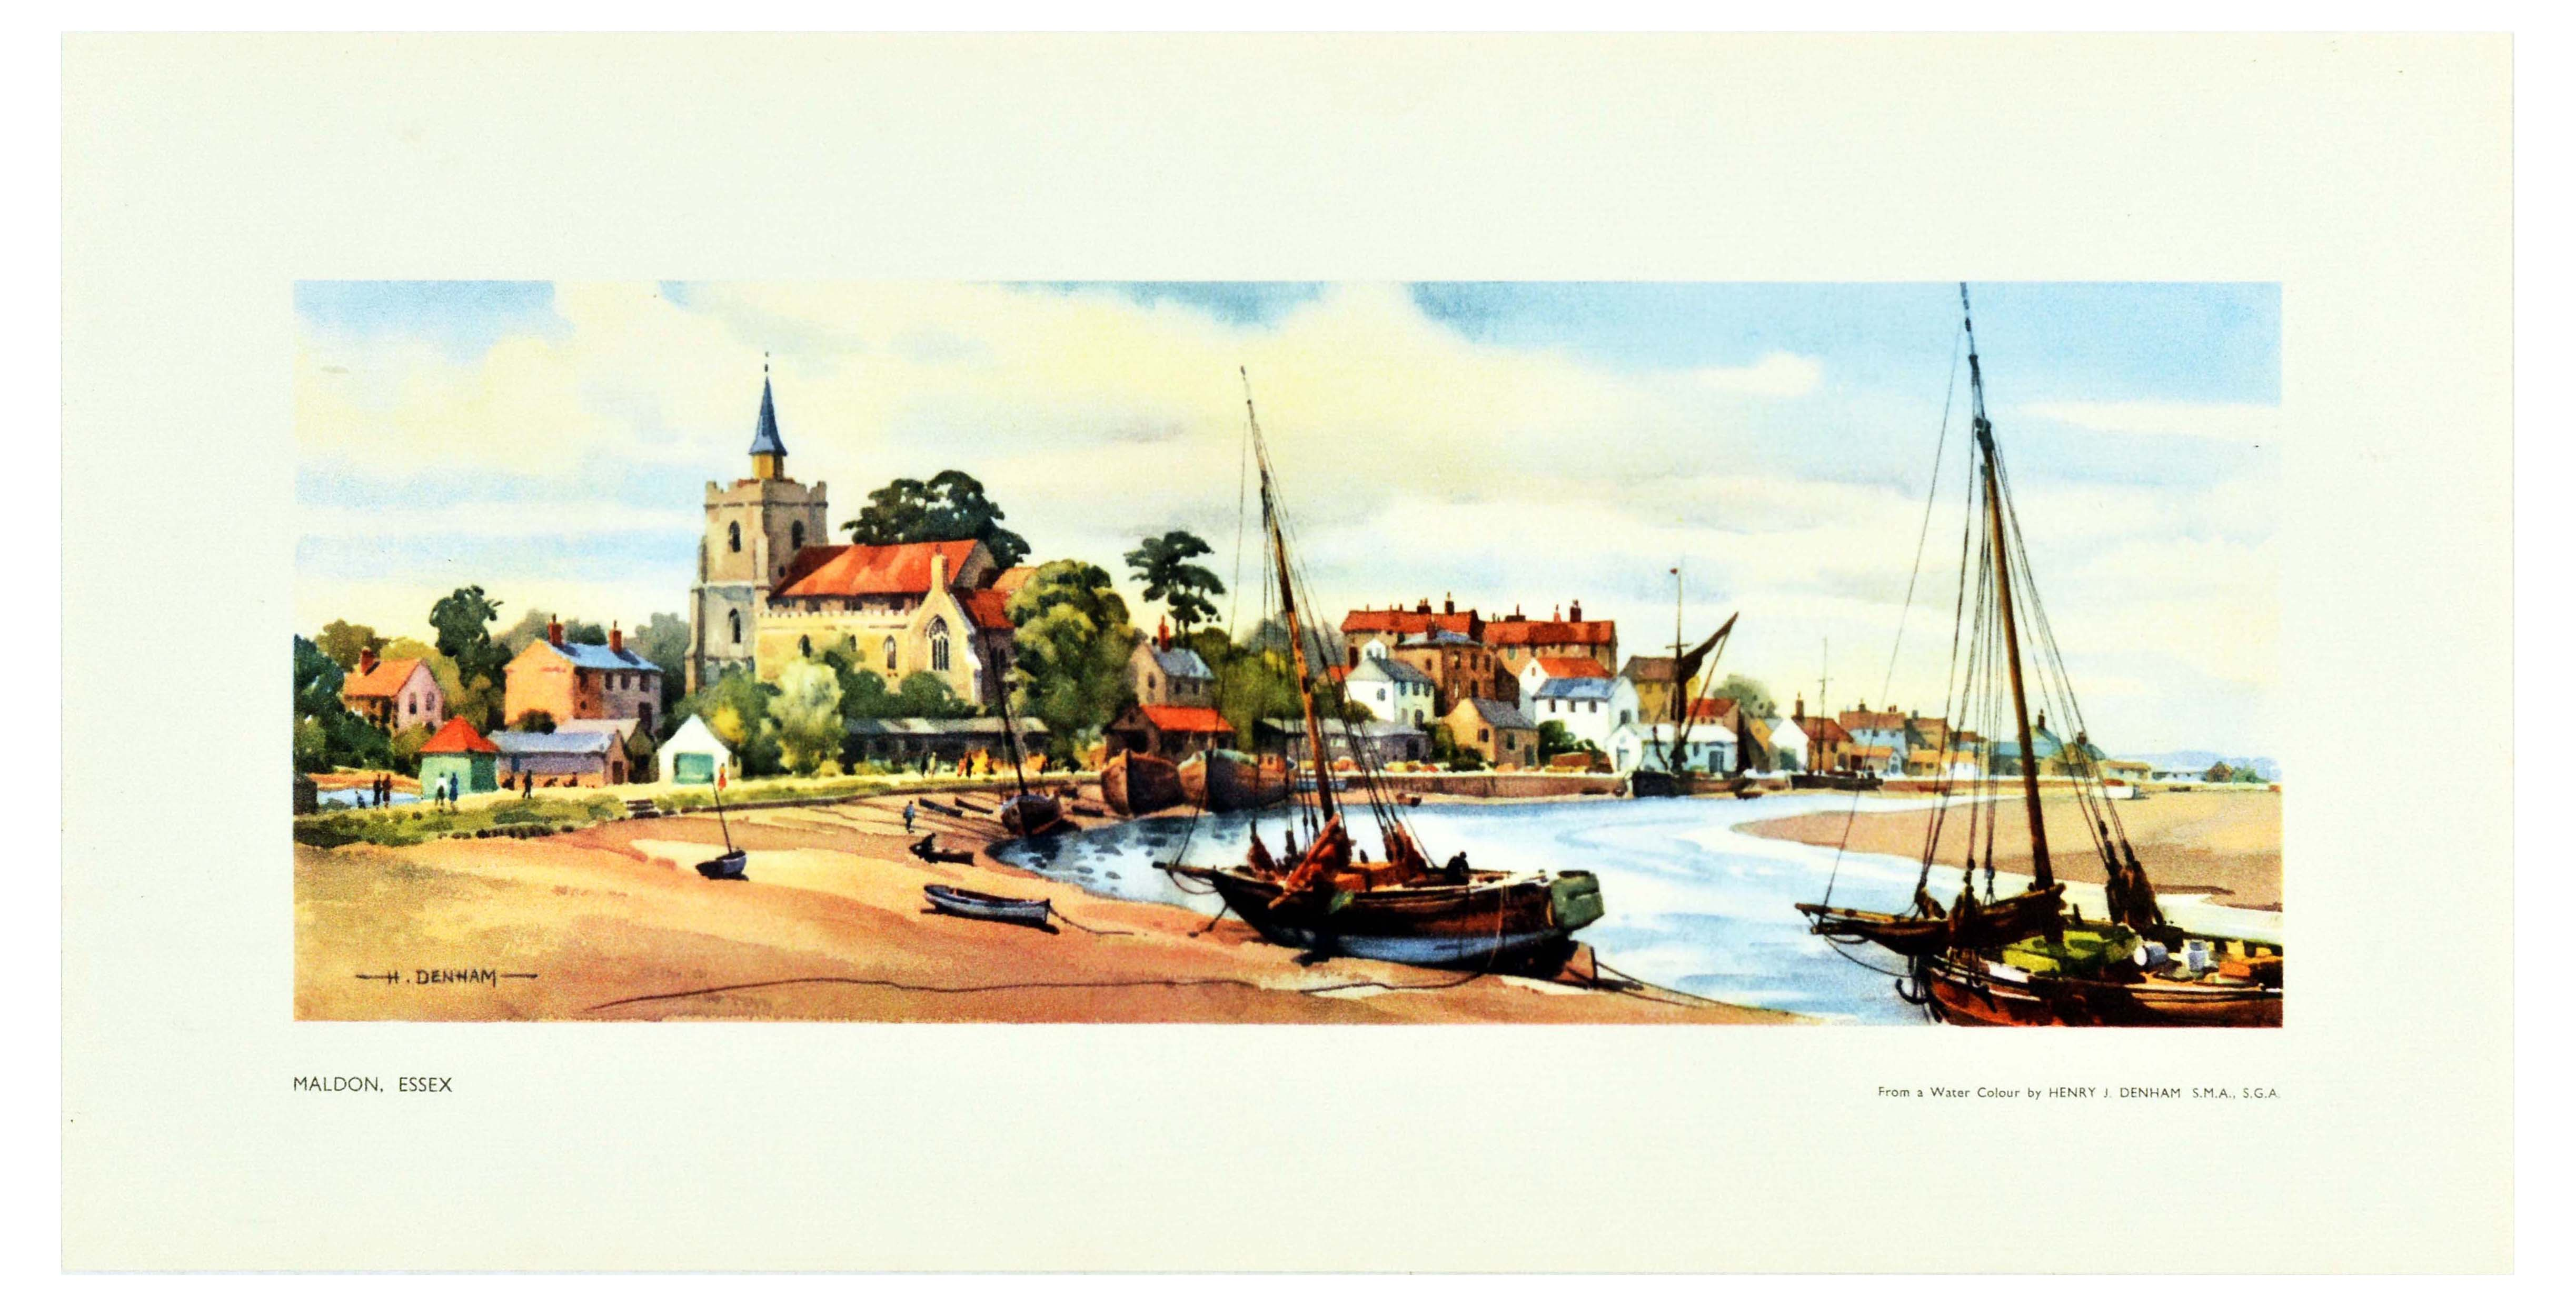 Set Travel Posters LNER Yorkshire Suffolk Essex Ilkley - Image 3 of 4